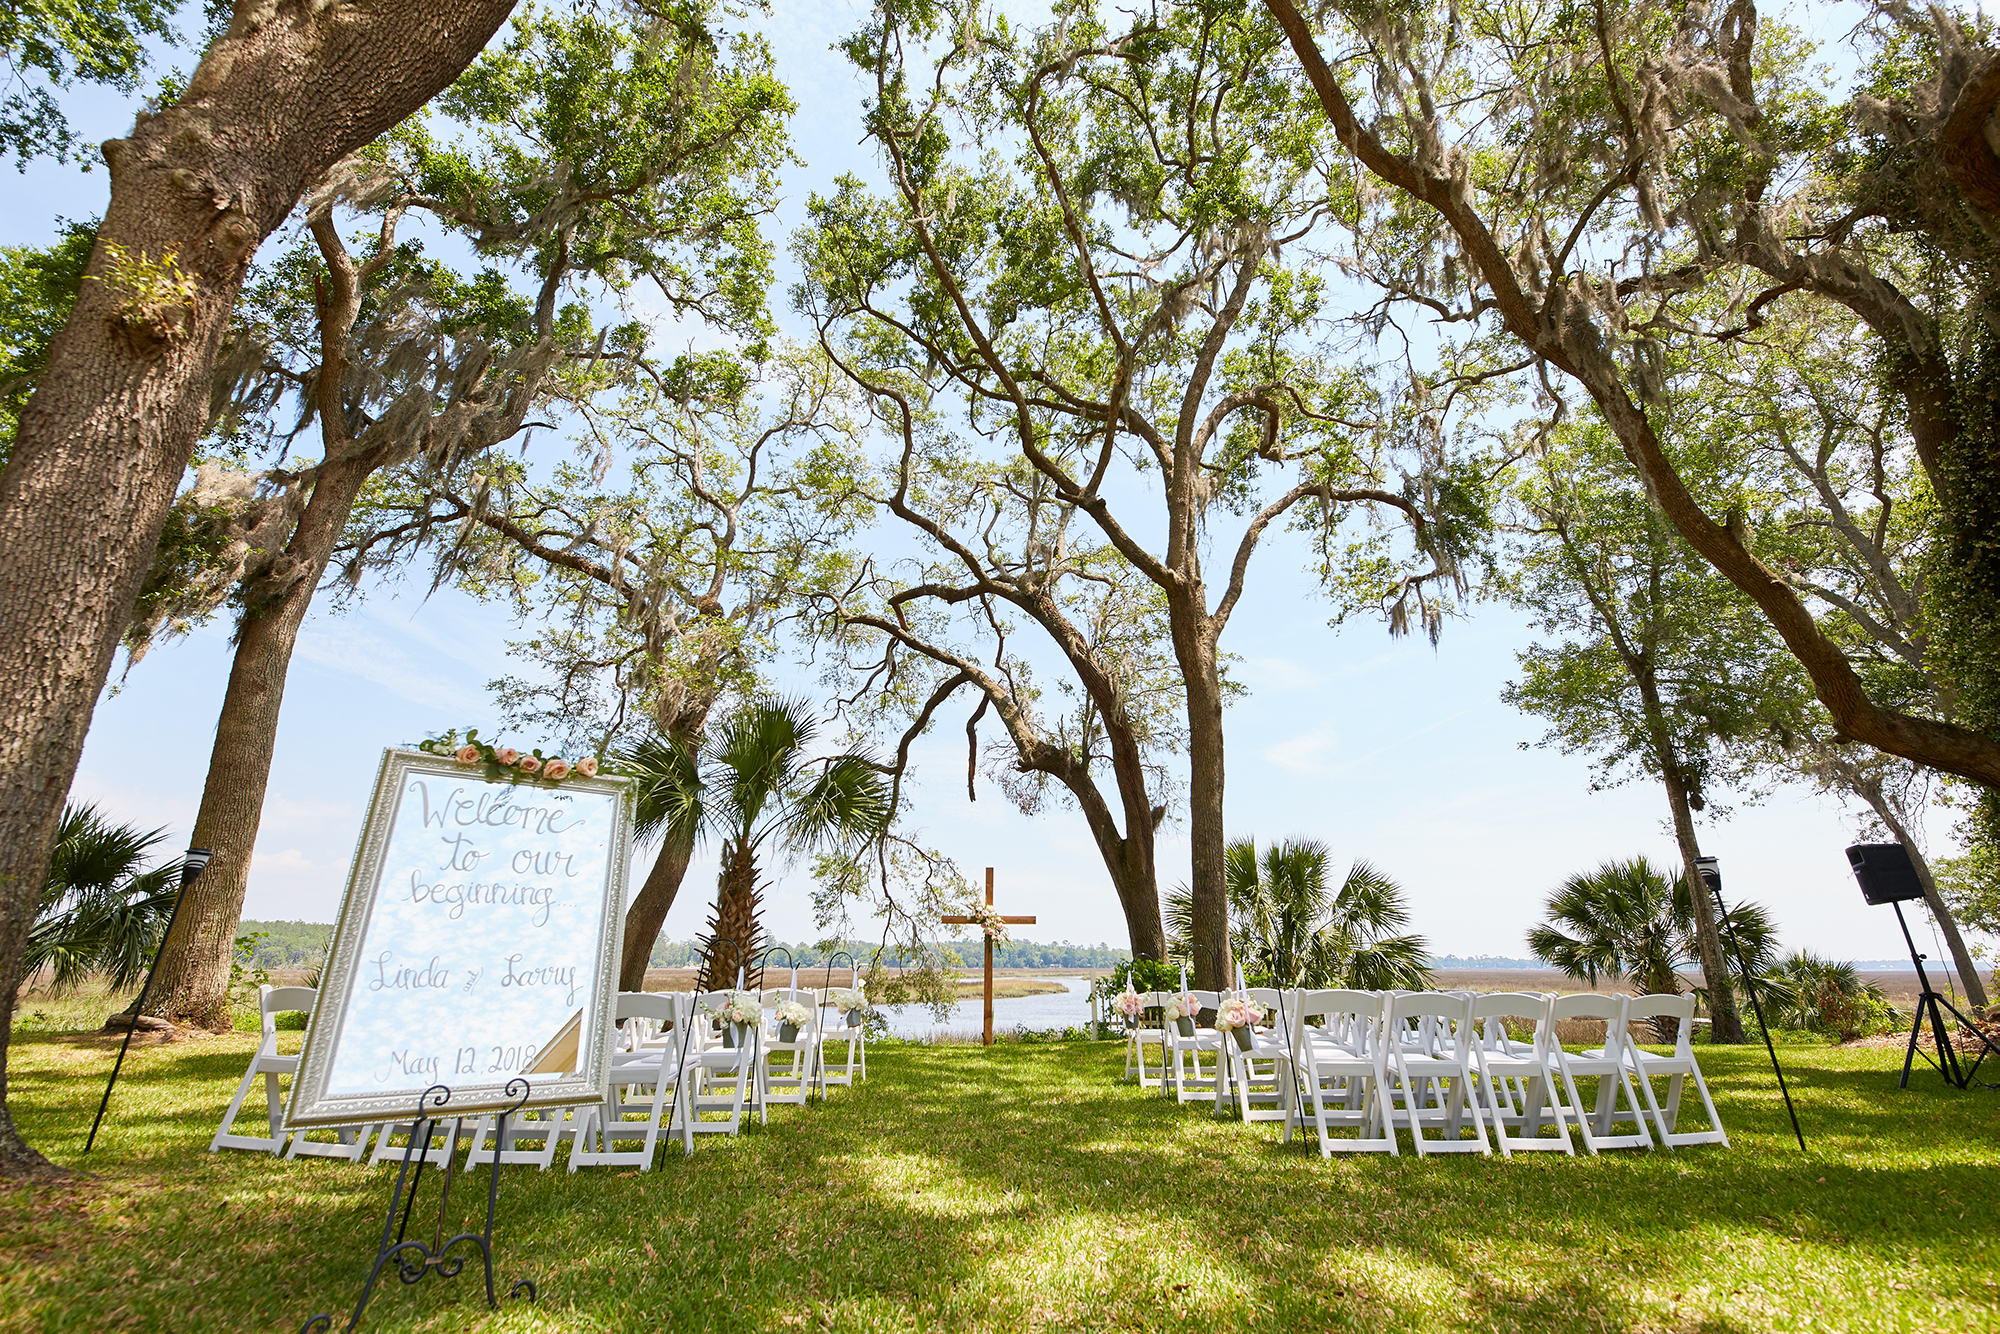 The Bluff Venue - Wedding Venue    The Bluff is nestled on the beautiful banks of Crooked River. The combination of the river view, marsh, live oak trees and the peaceful atmosphere makes The Bluff the perfect setting for your dream wedding..